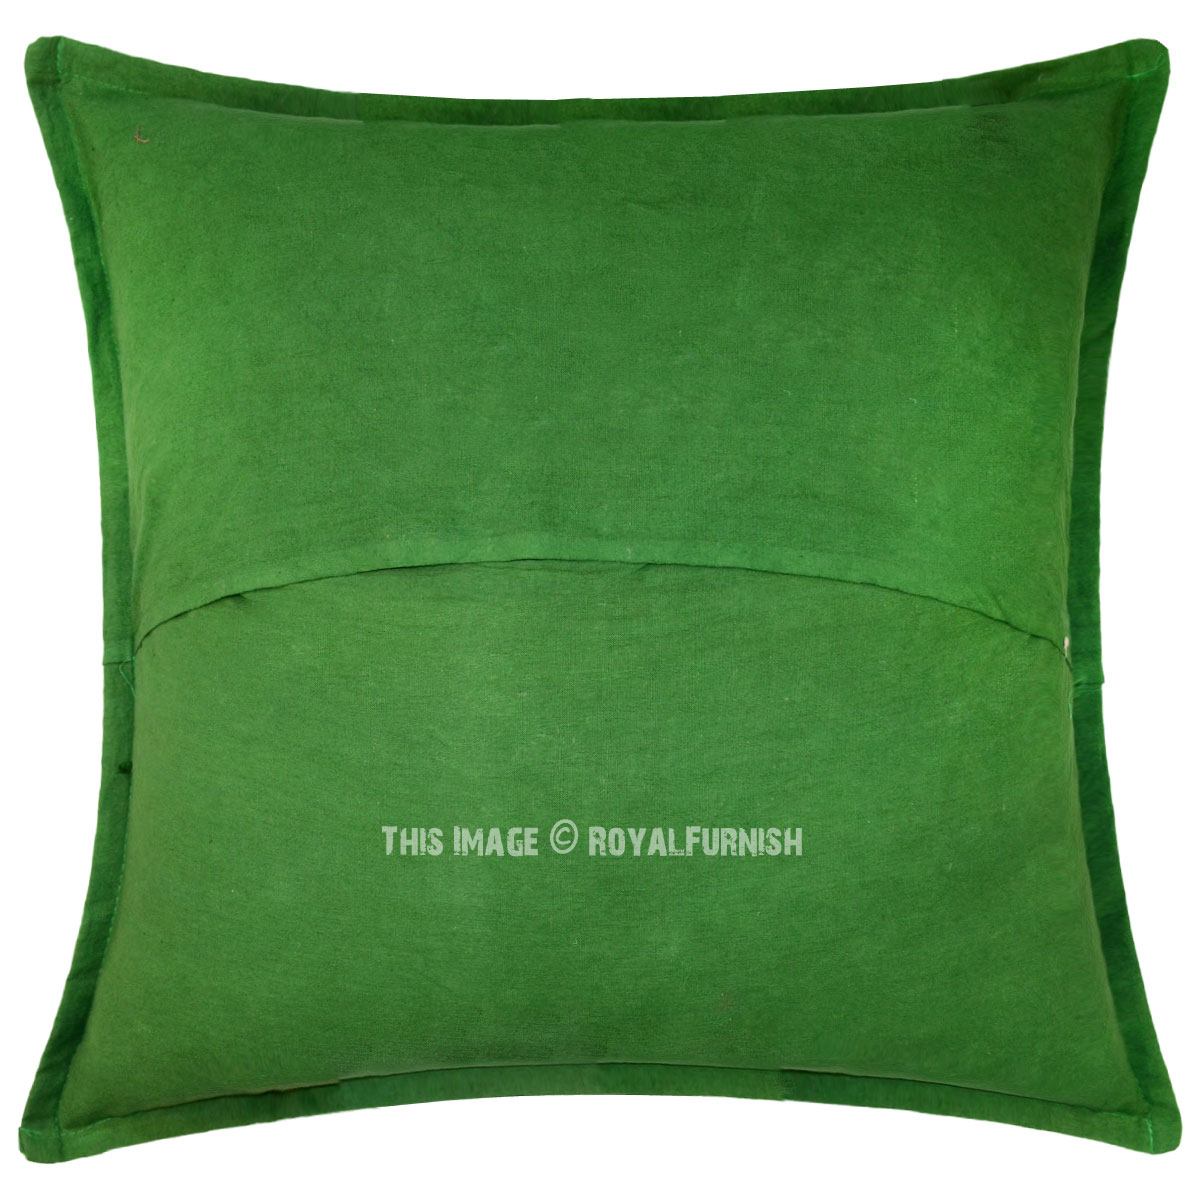 cotton sofa covers india timber article review green mirror embroidered indian throw pillow